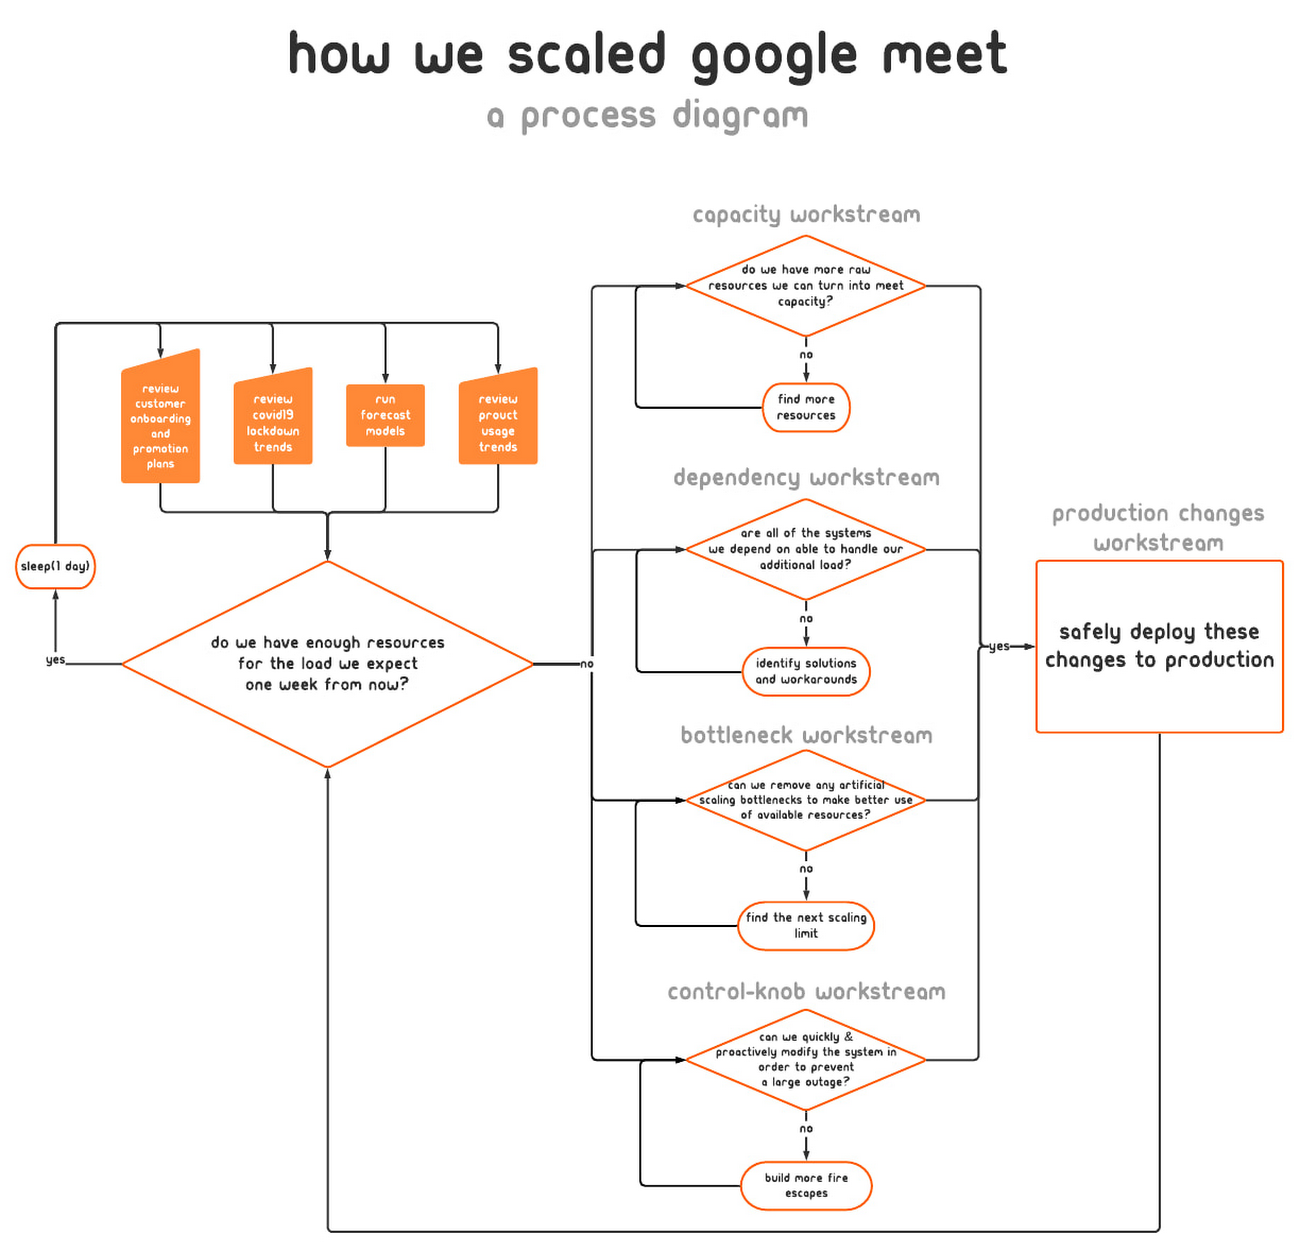 how we scaled google meet.jpg